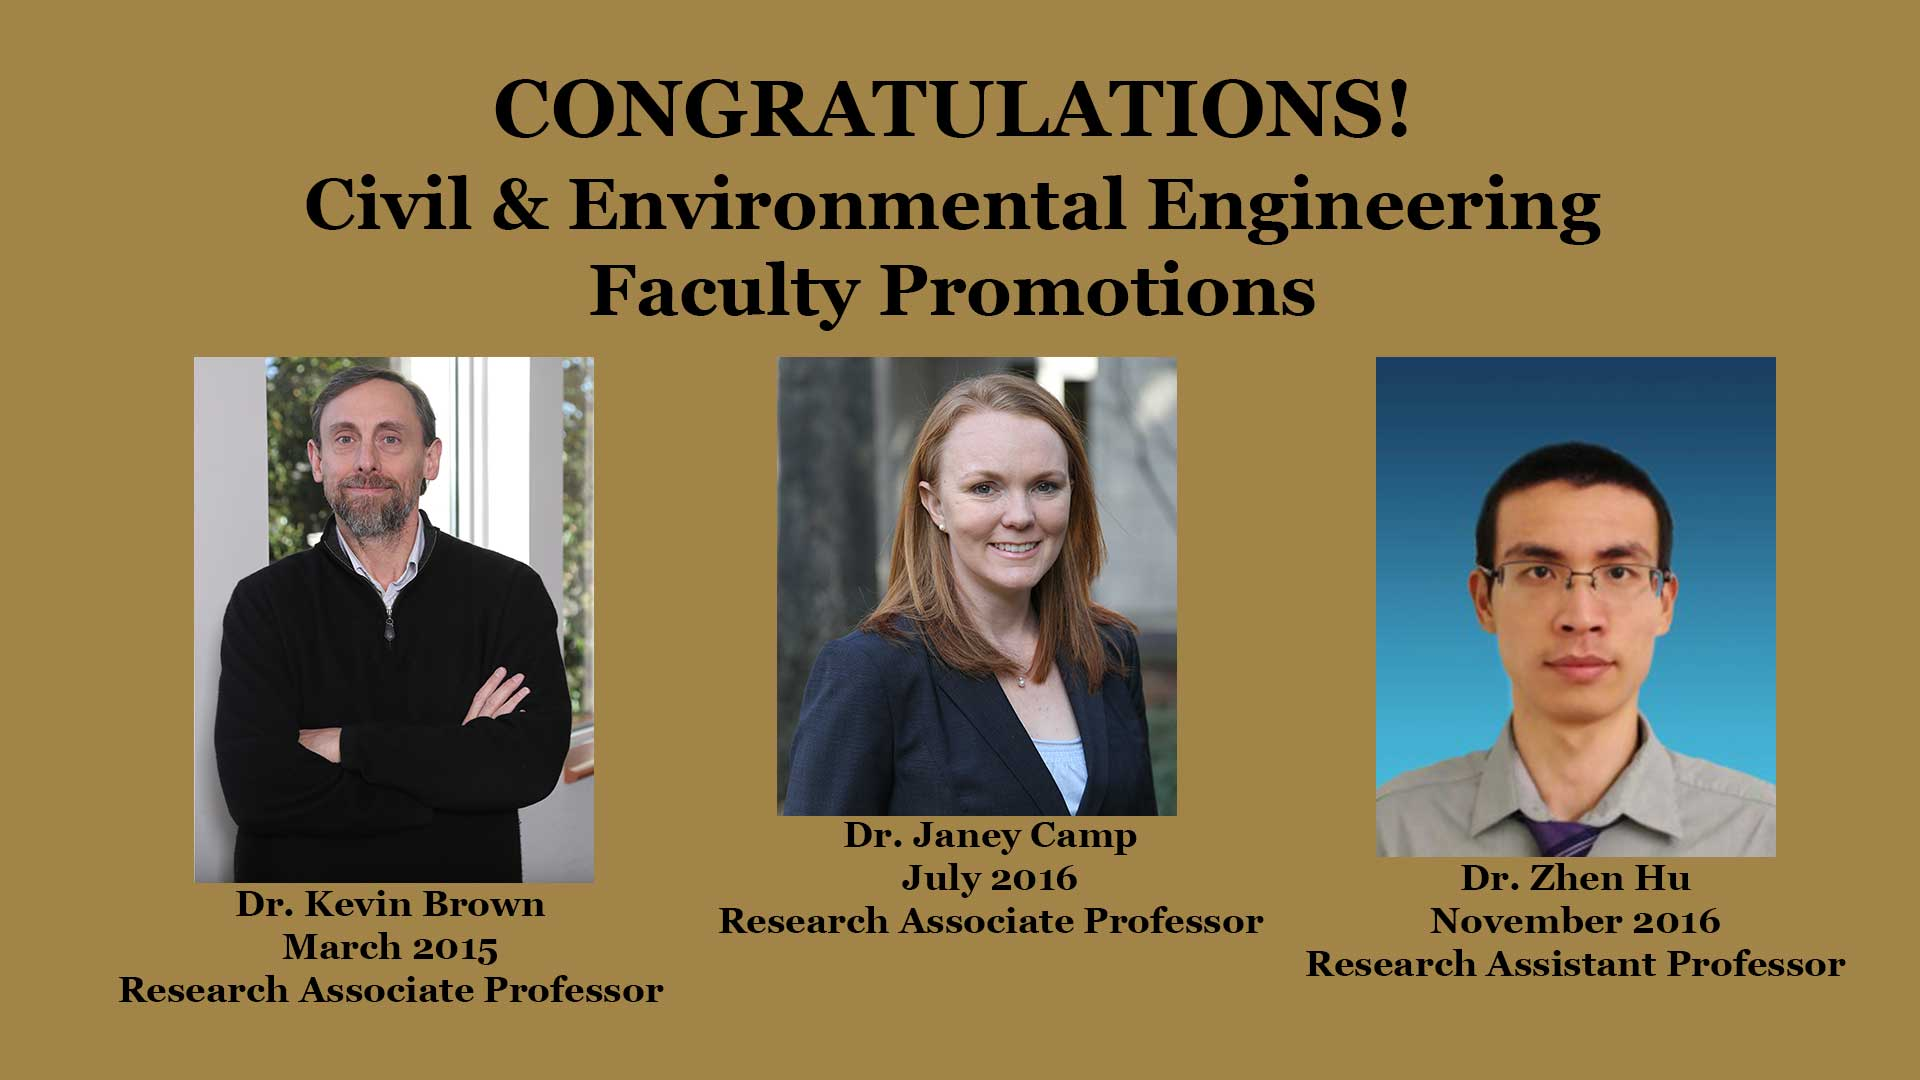 Faculty Promotions 2015-2016